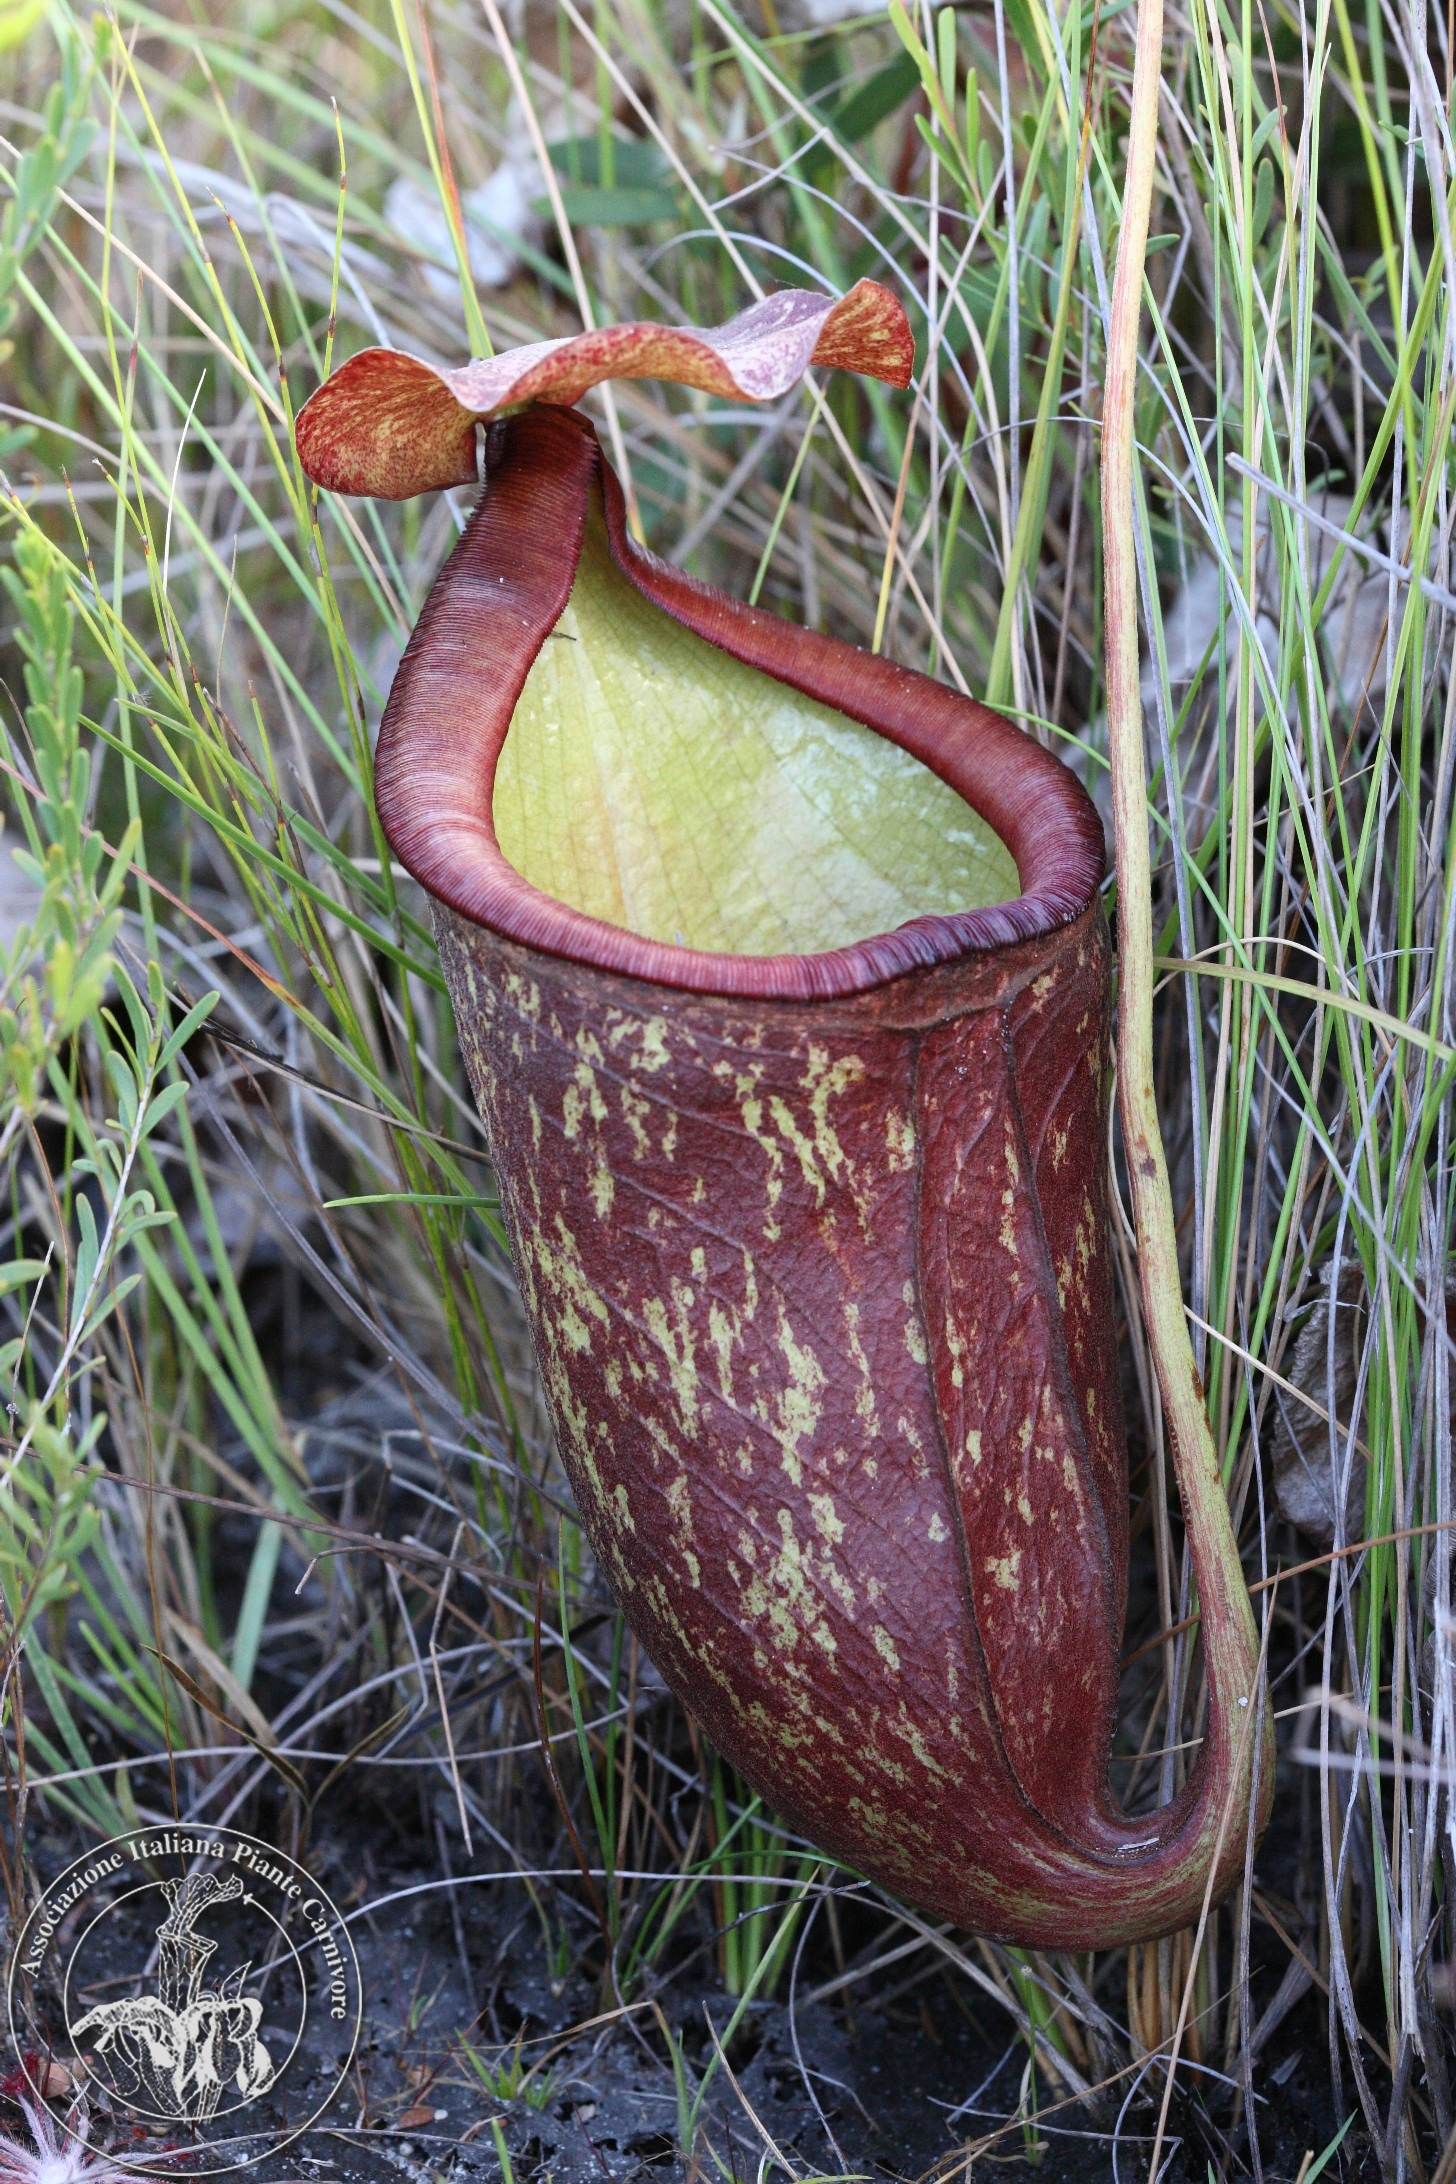 Nepenthes rowanae